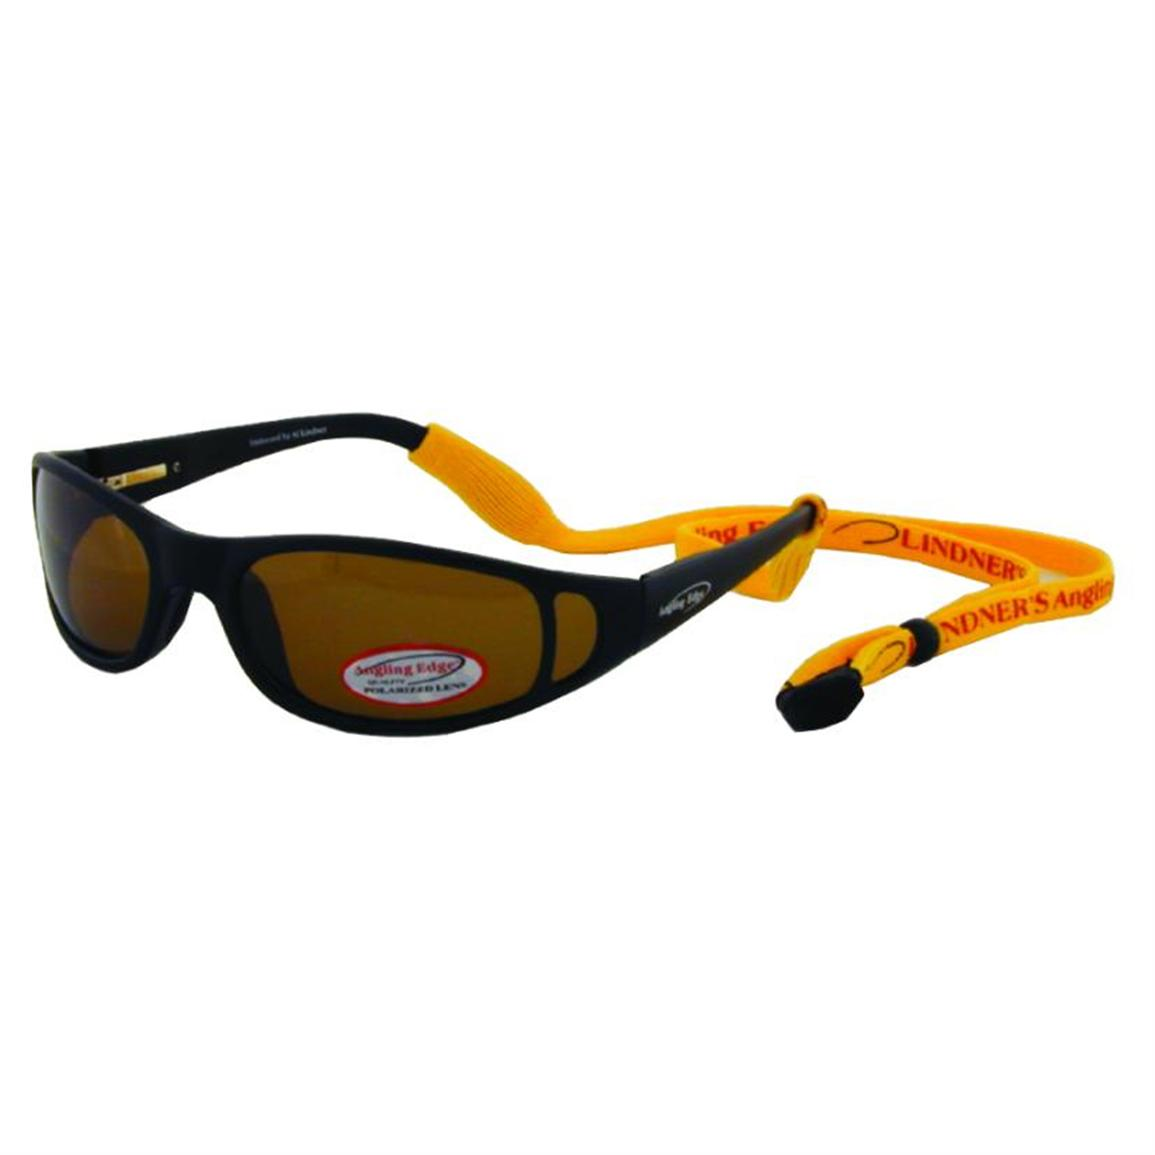 Brown polarized fishing sunglasses for Polarized fishing sunglasses